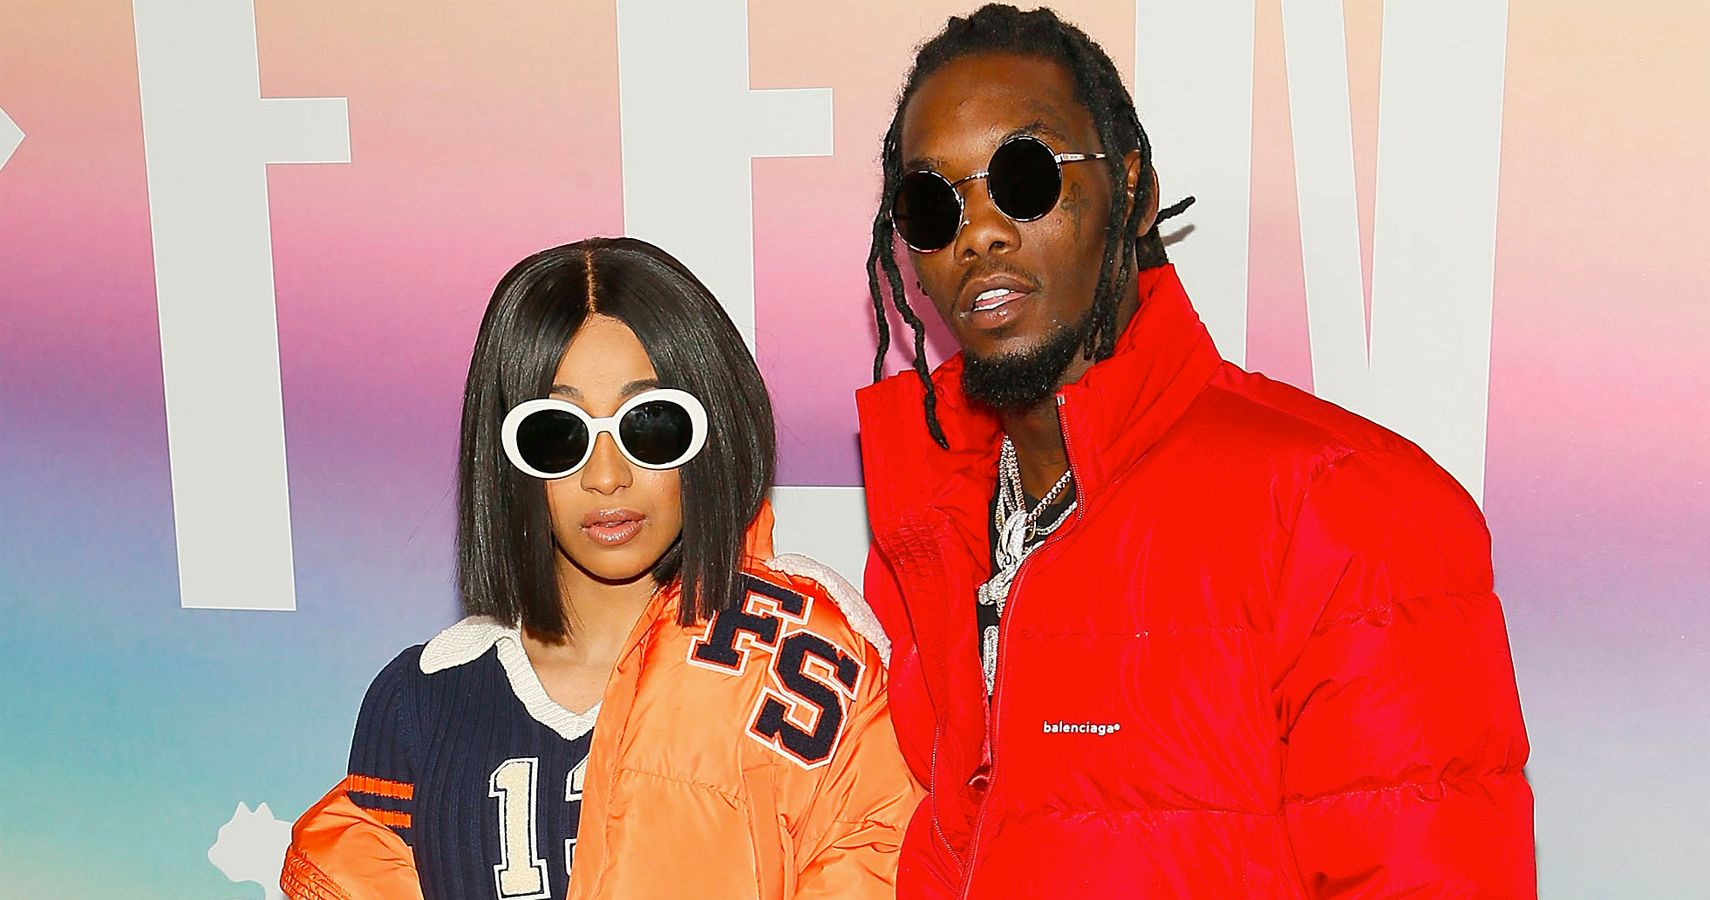 Cardi B Reportedly Pursuing Legal Action Against Hackers: Cardi B Reveals The Trust Issues She Had With Her Husband